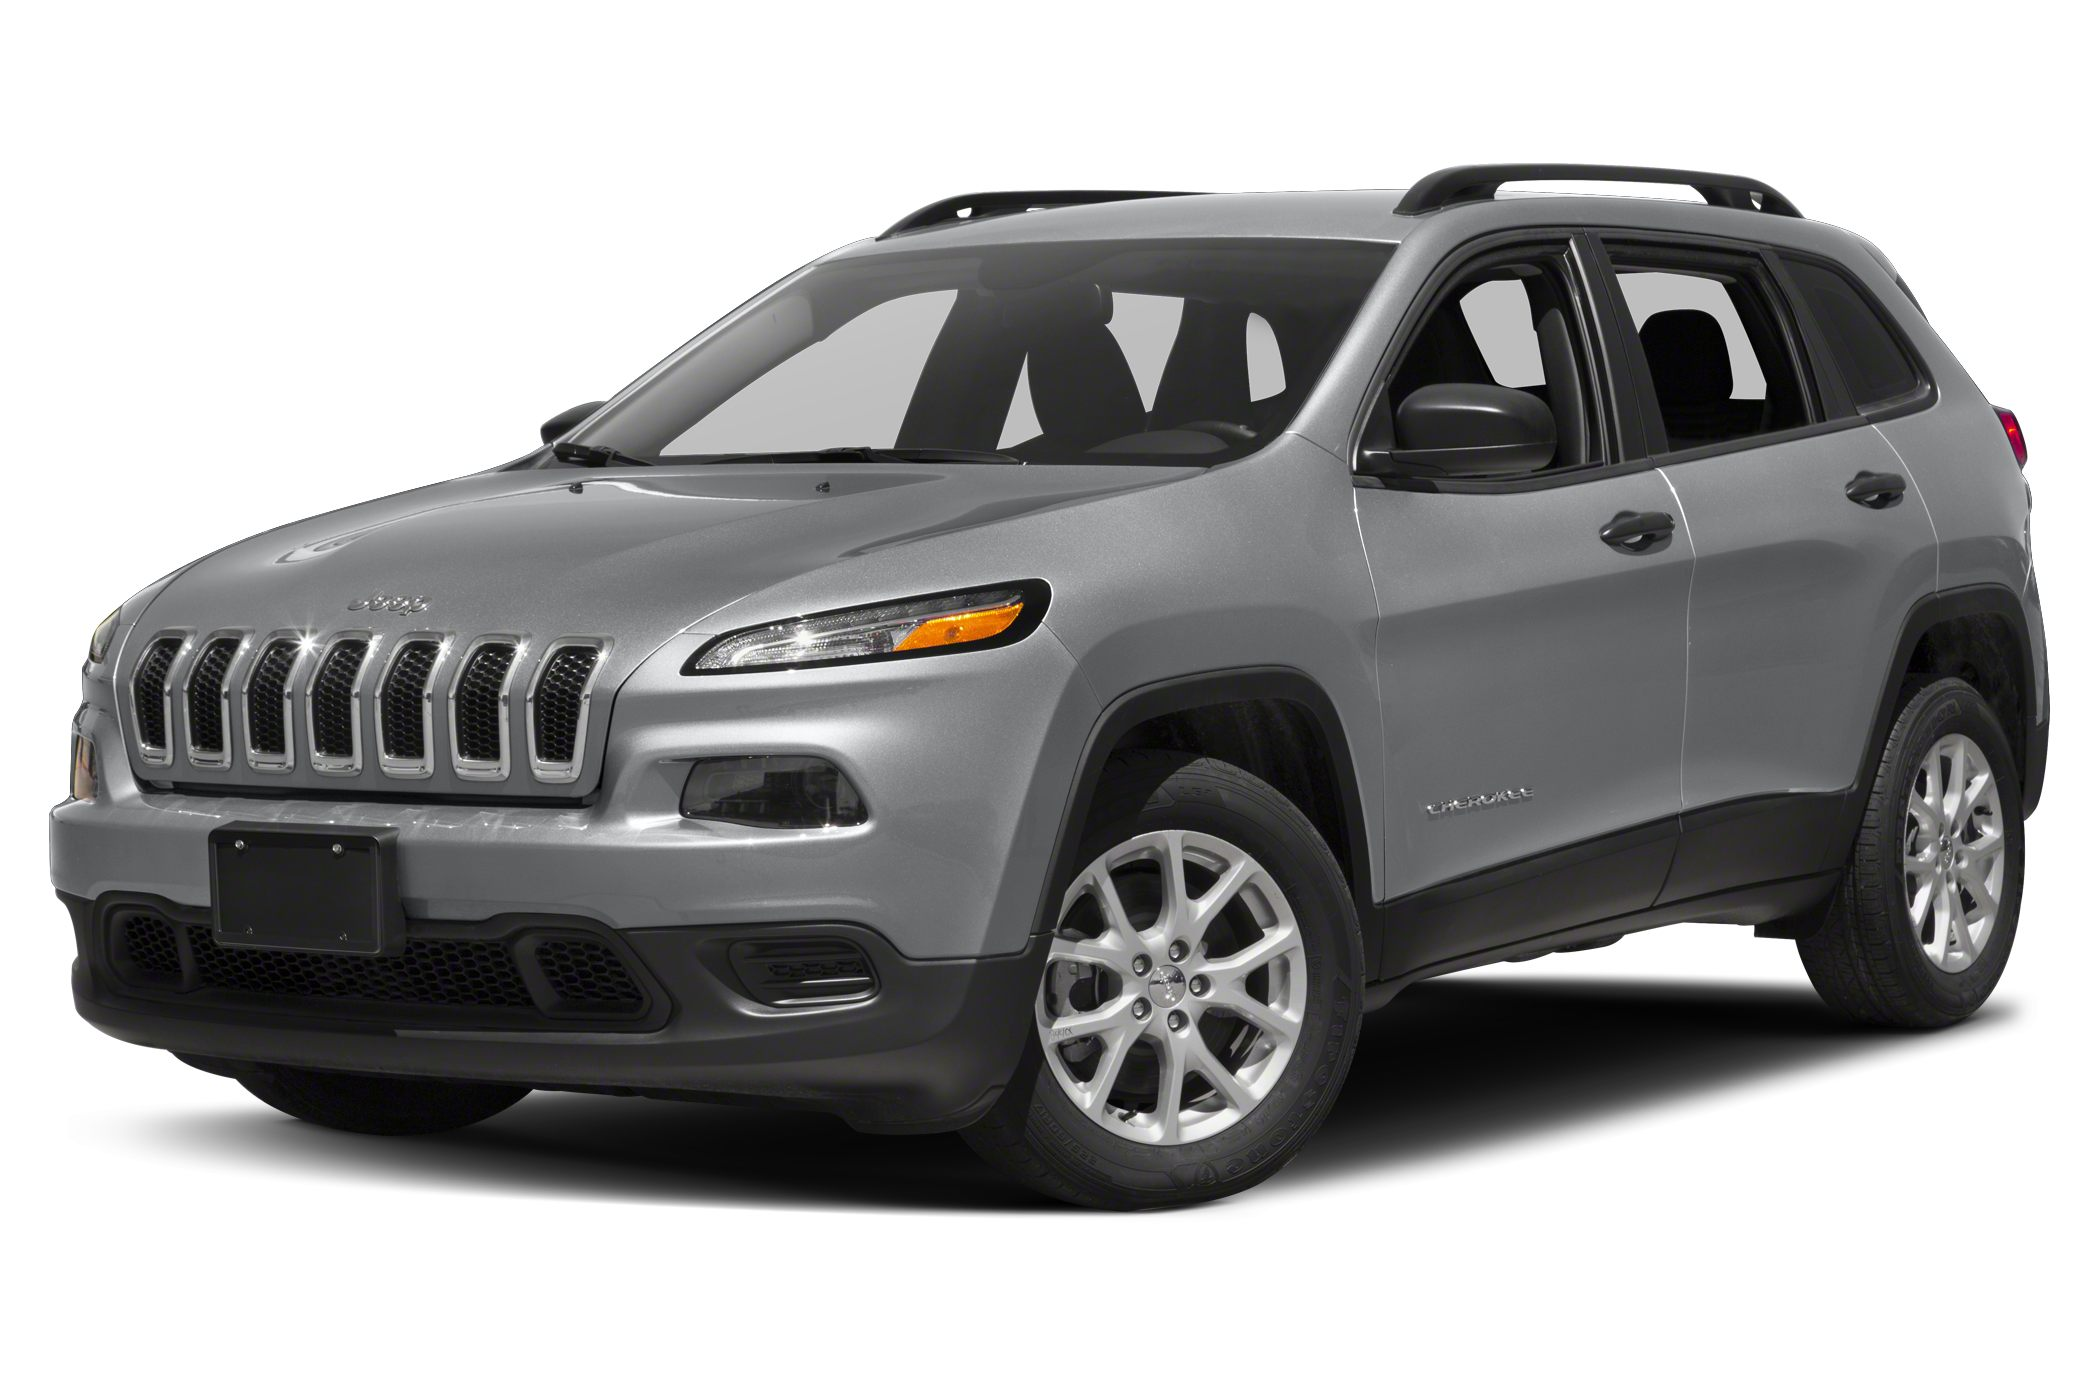 2017 Jeep Cherokee Sport Cherokee Sport Ready to roll Wagon buying made easy Fresh arrival Mor